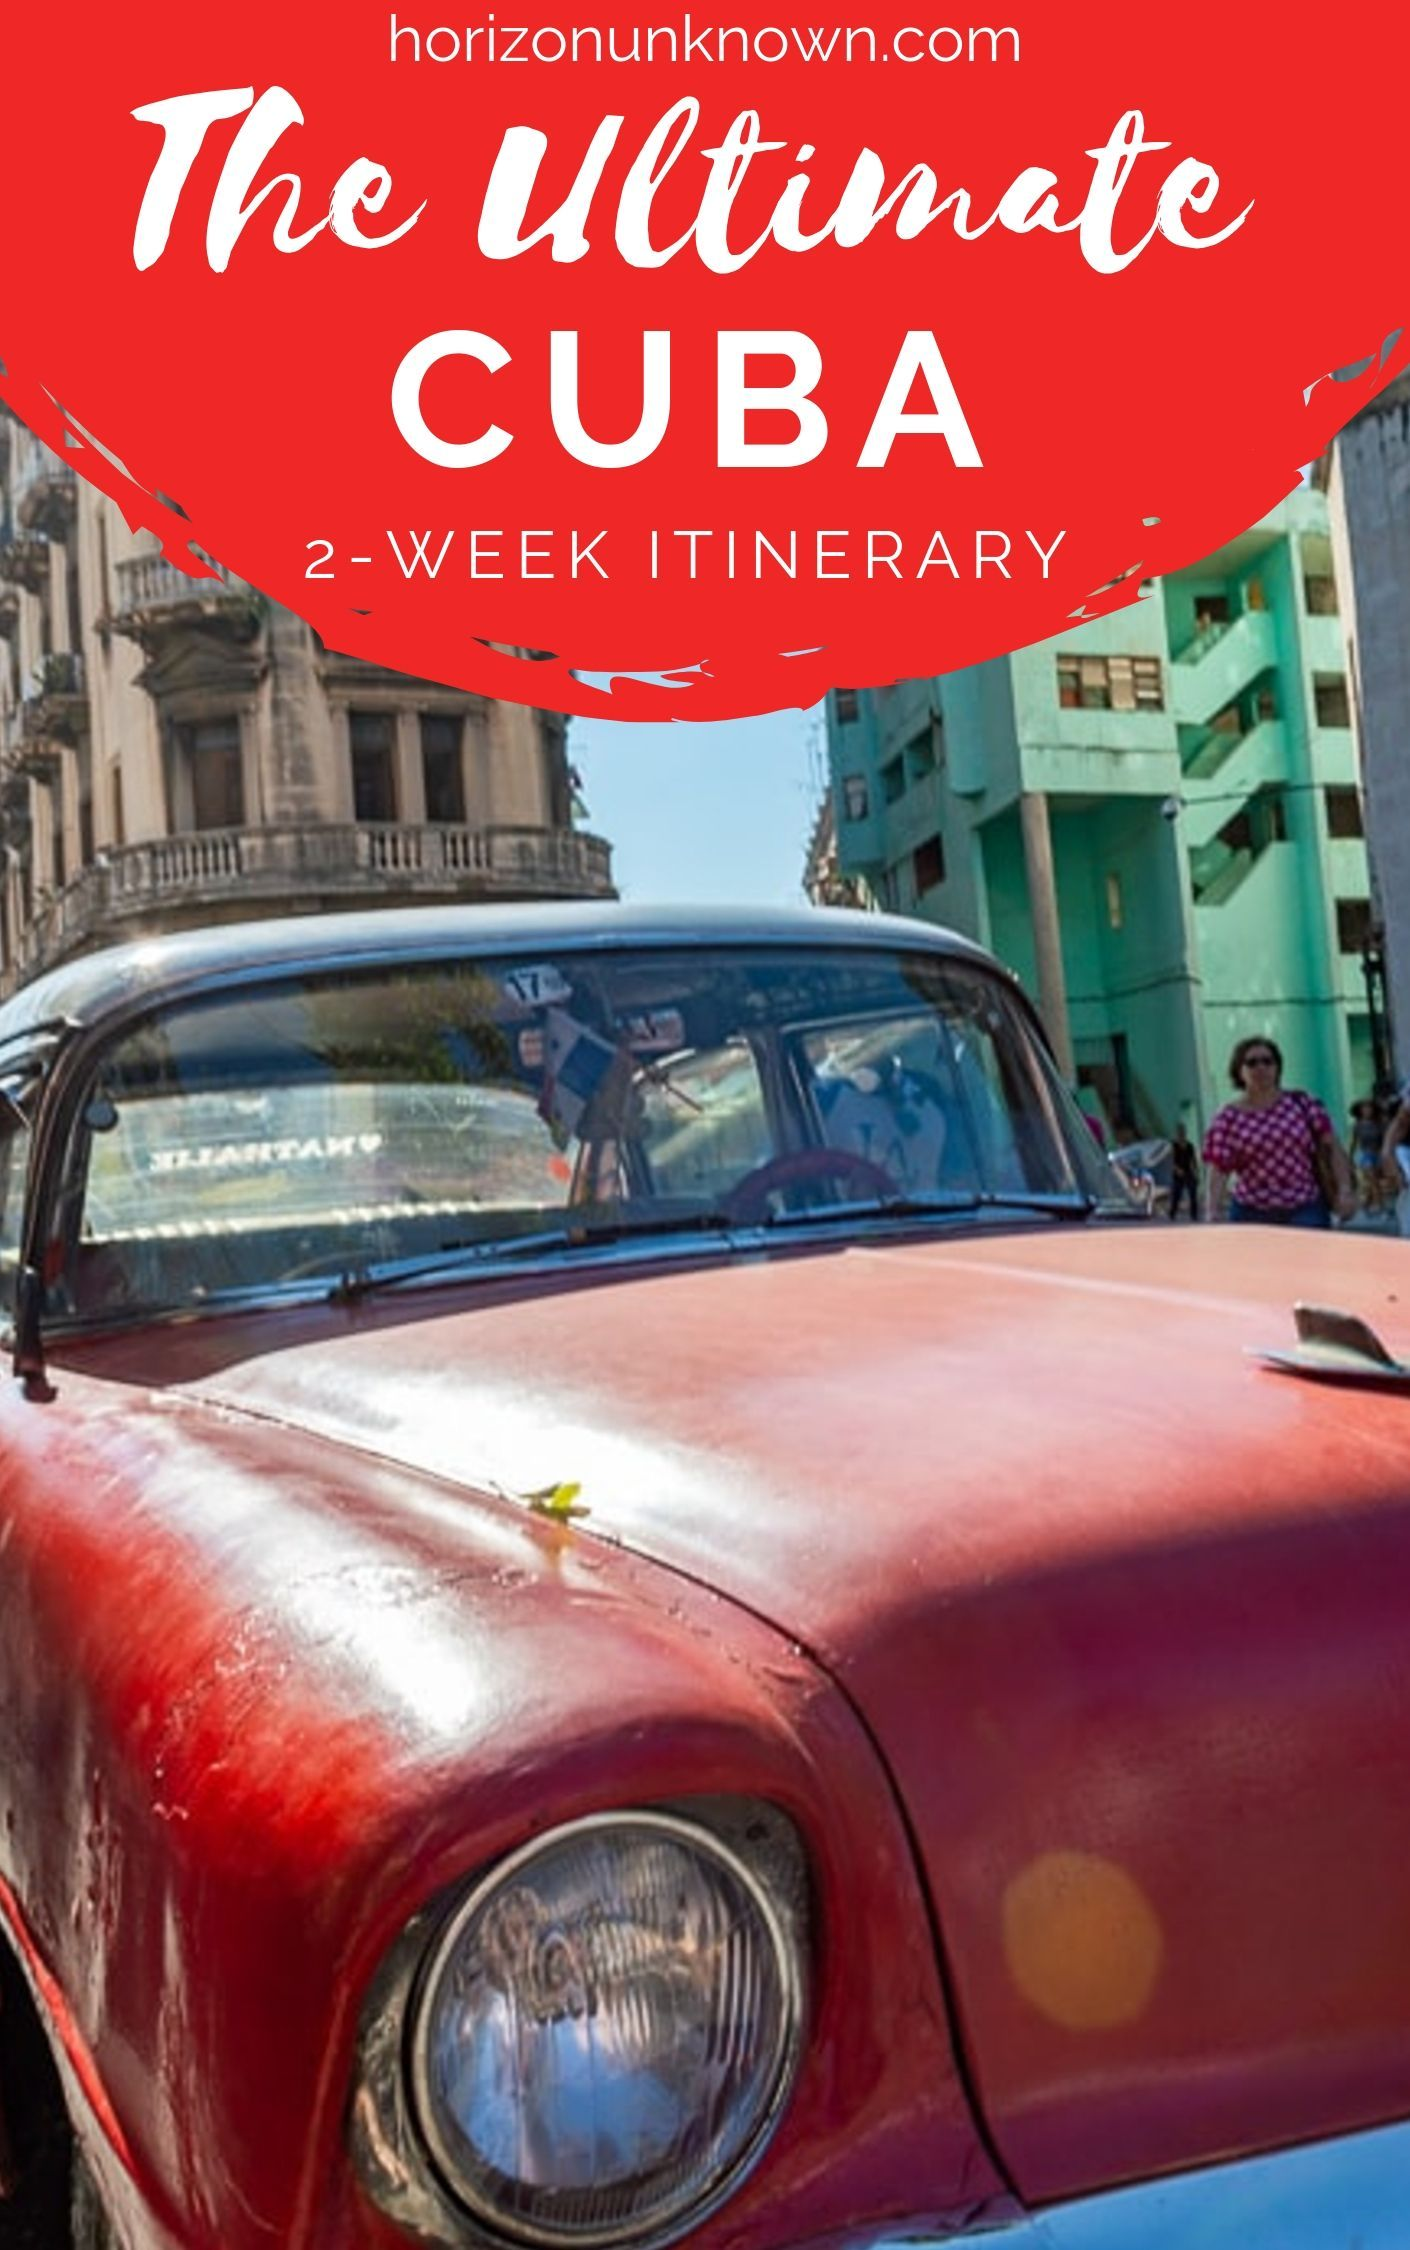 Thinking of traveling to Cuba? Build your perfect 2-week Cuba travel itinerary - From historical tours, to scuba diving and snorkeling, jungle treks and vibrant cars and buildings - Have an unforgettable time in Cuba! . #horizonunknown #travel #cuba #Caribbean #travelcuba #2weekcuba #havana #trinidad #vinales #cubabeaches #cubaphotography